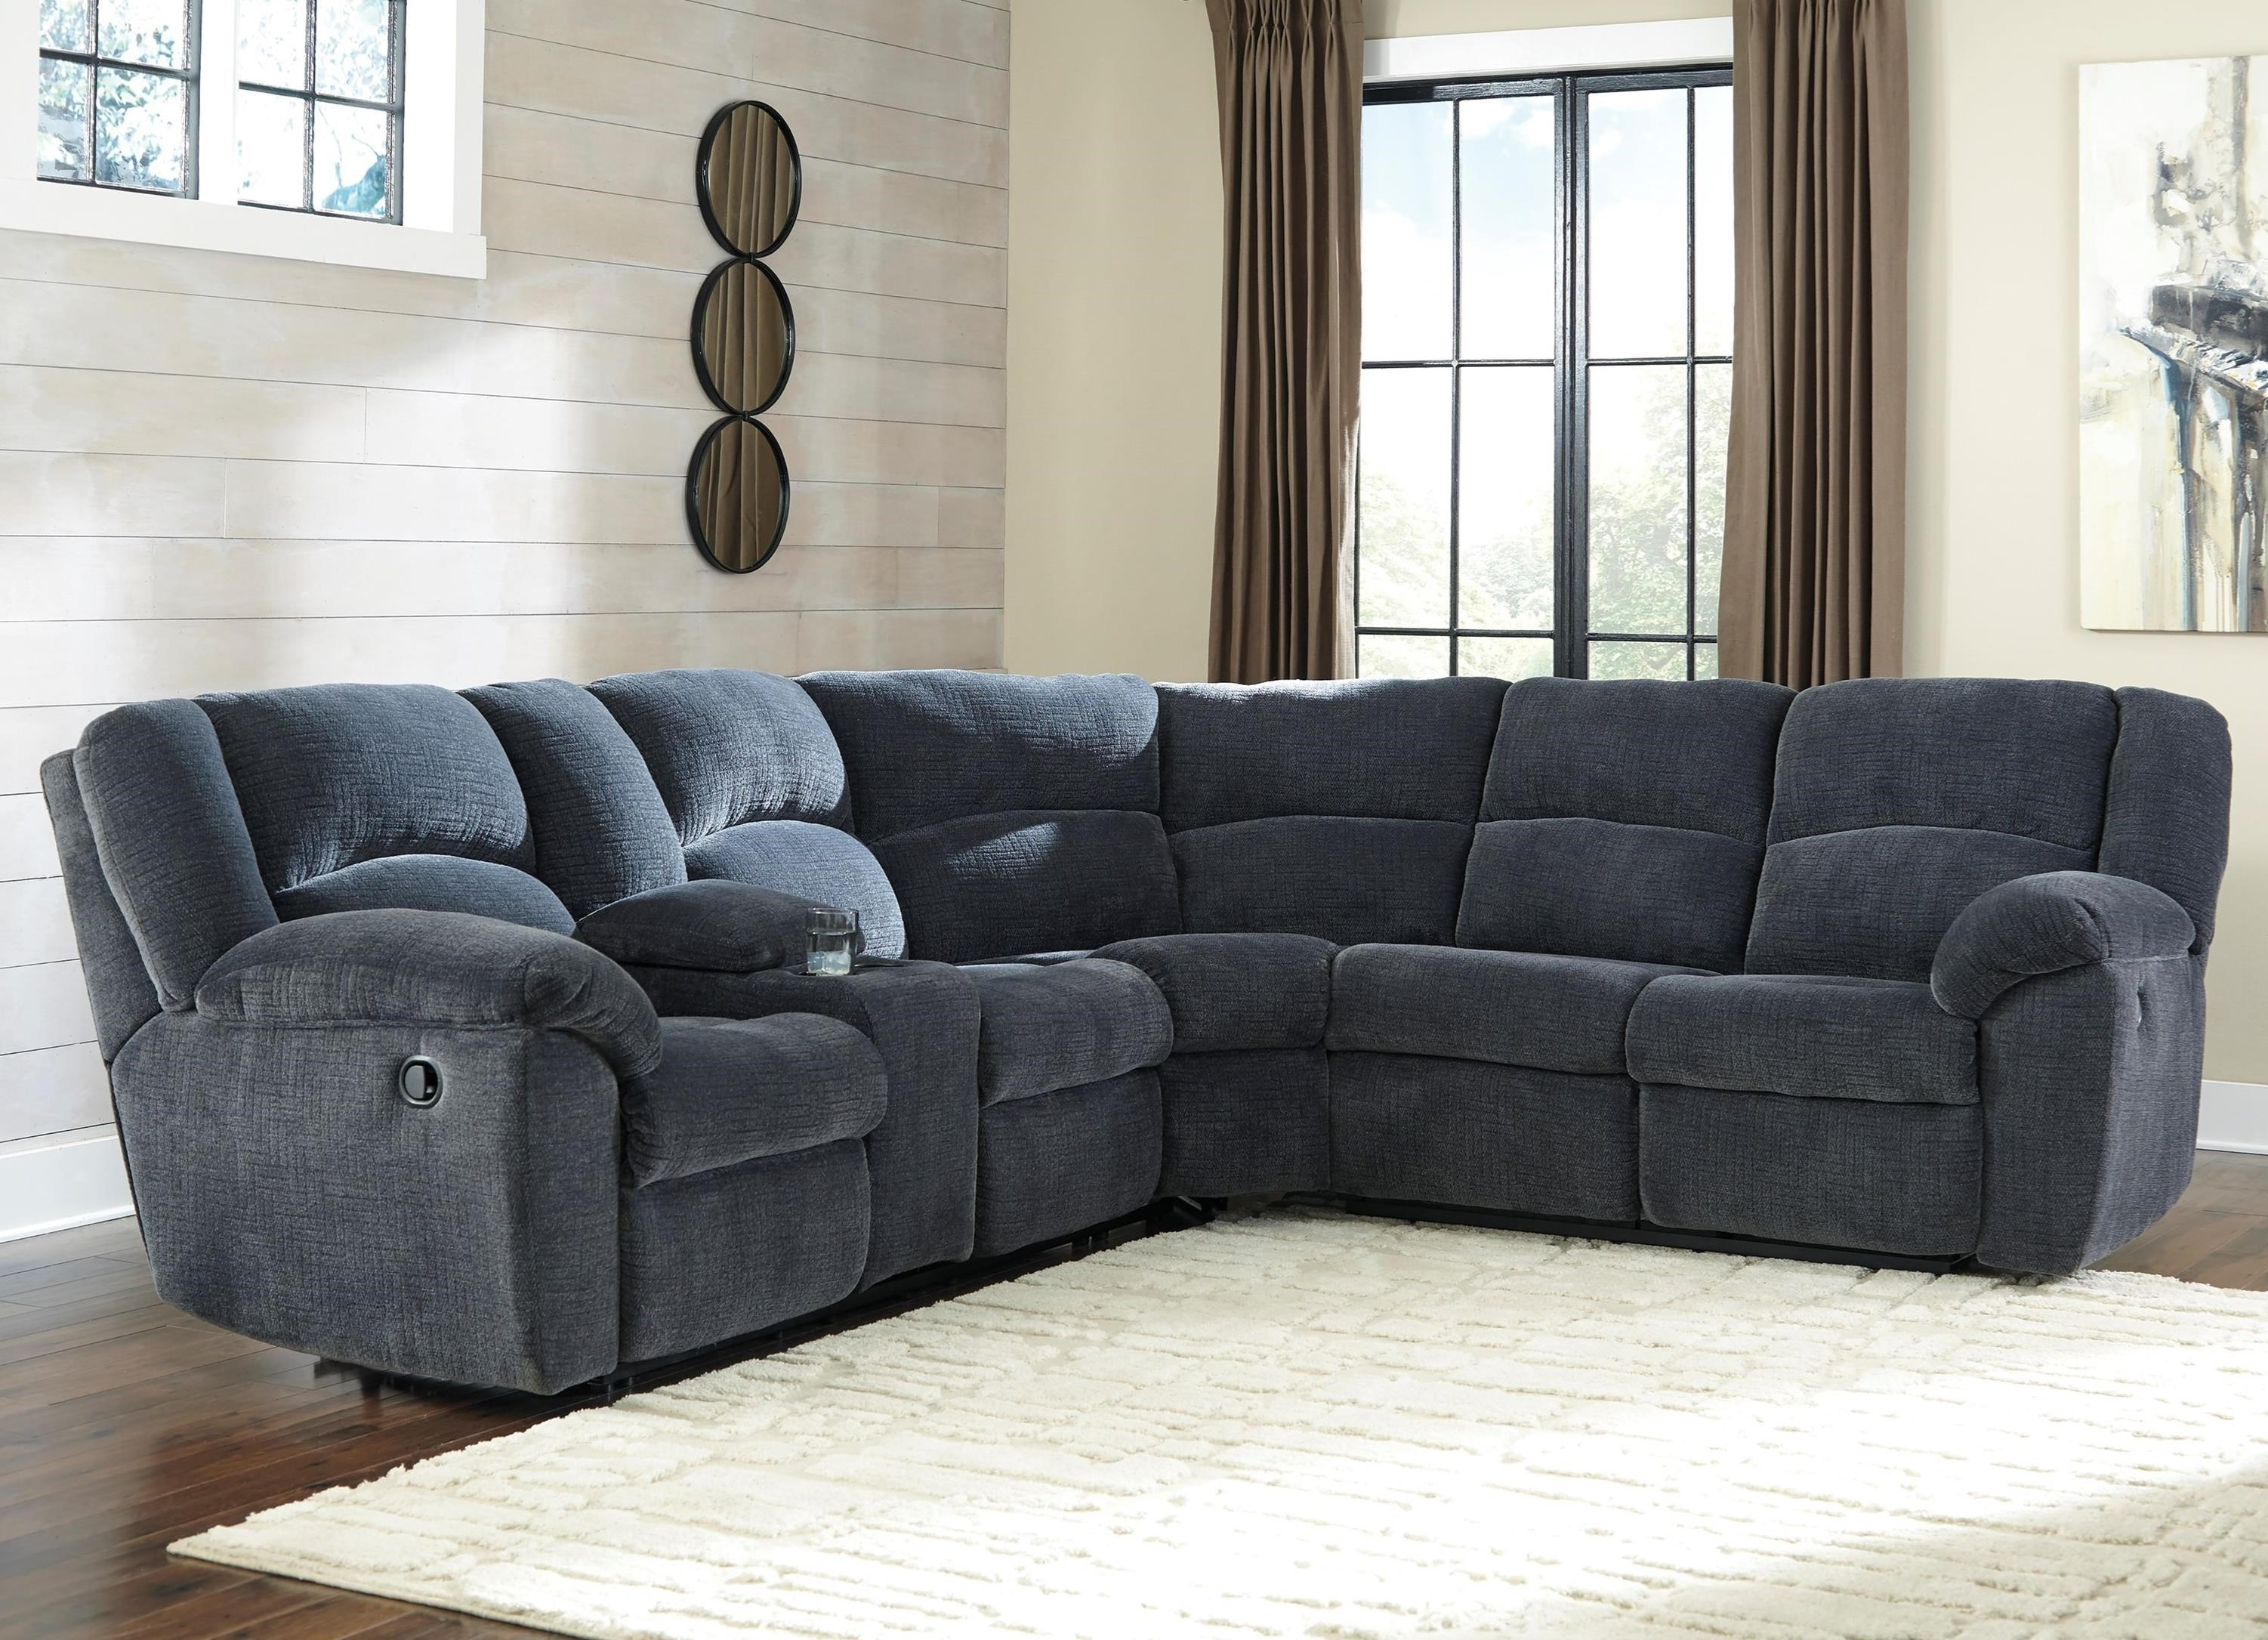 Grey Sectional Sofa Toronto Costco Gray Leather With Recliners Light With Regard To Sectional Sofas In Toronto (Image 4 of 10)